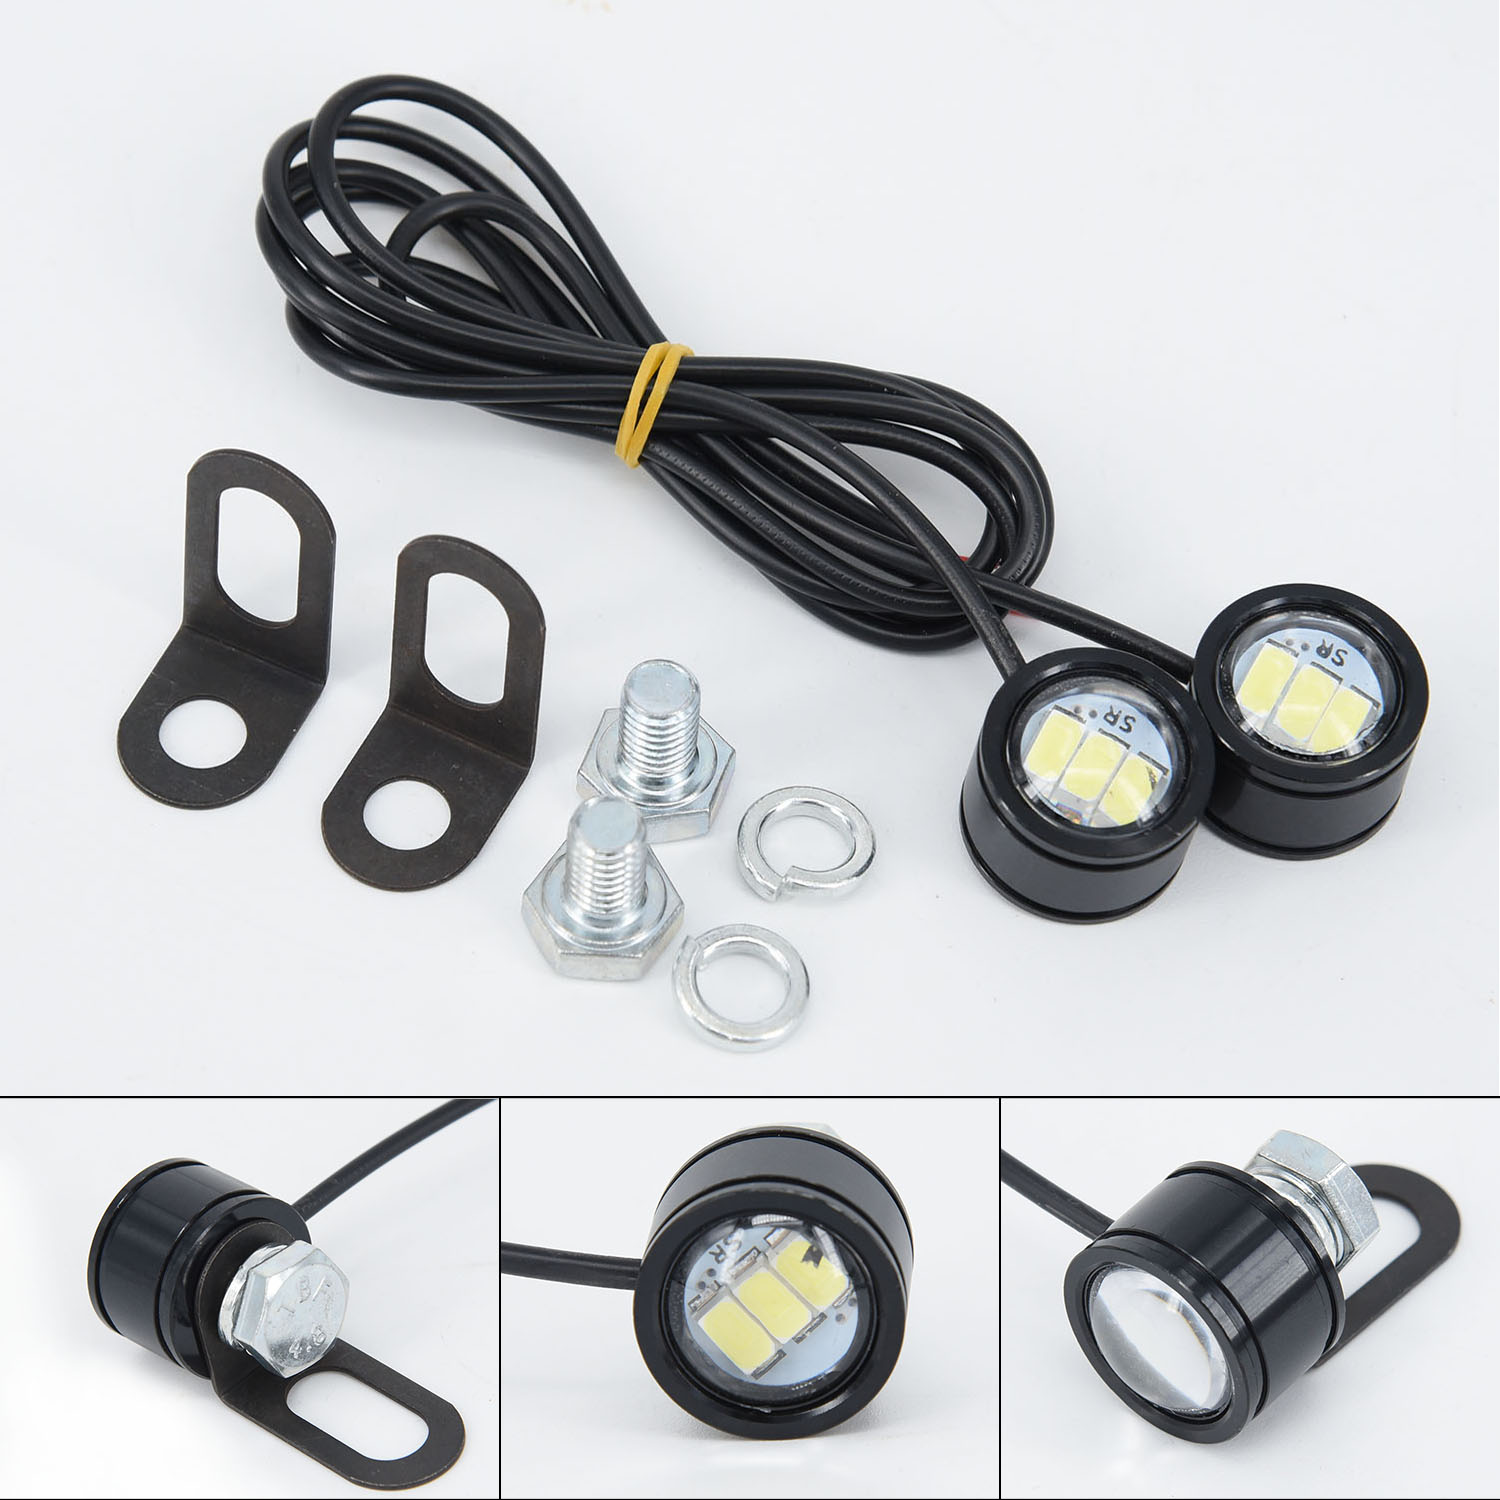 2019 new Arrival 2pcs Motorcycle Accessory Handlebar White LED Spotlight Headlight Driving Light Fog Lamp12V in Electromobile from Automobiles Motorcycles